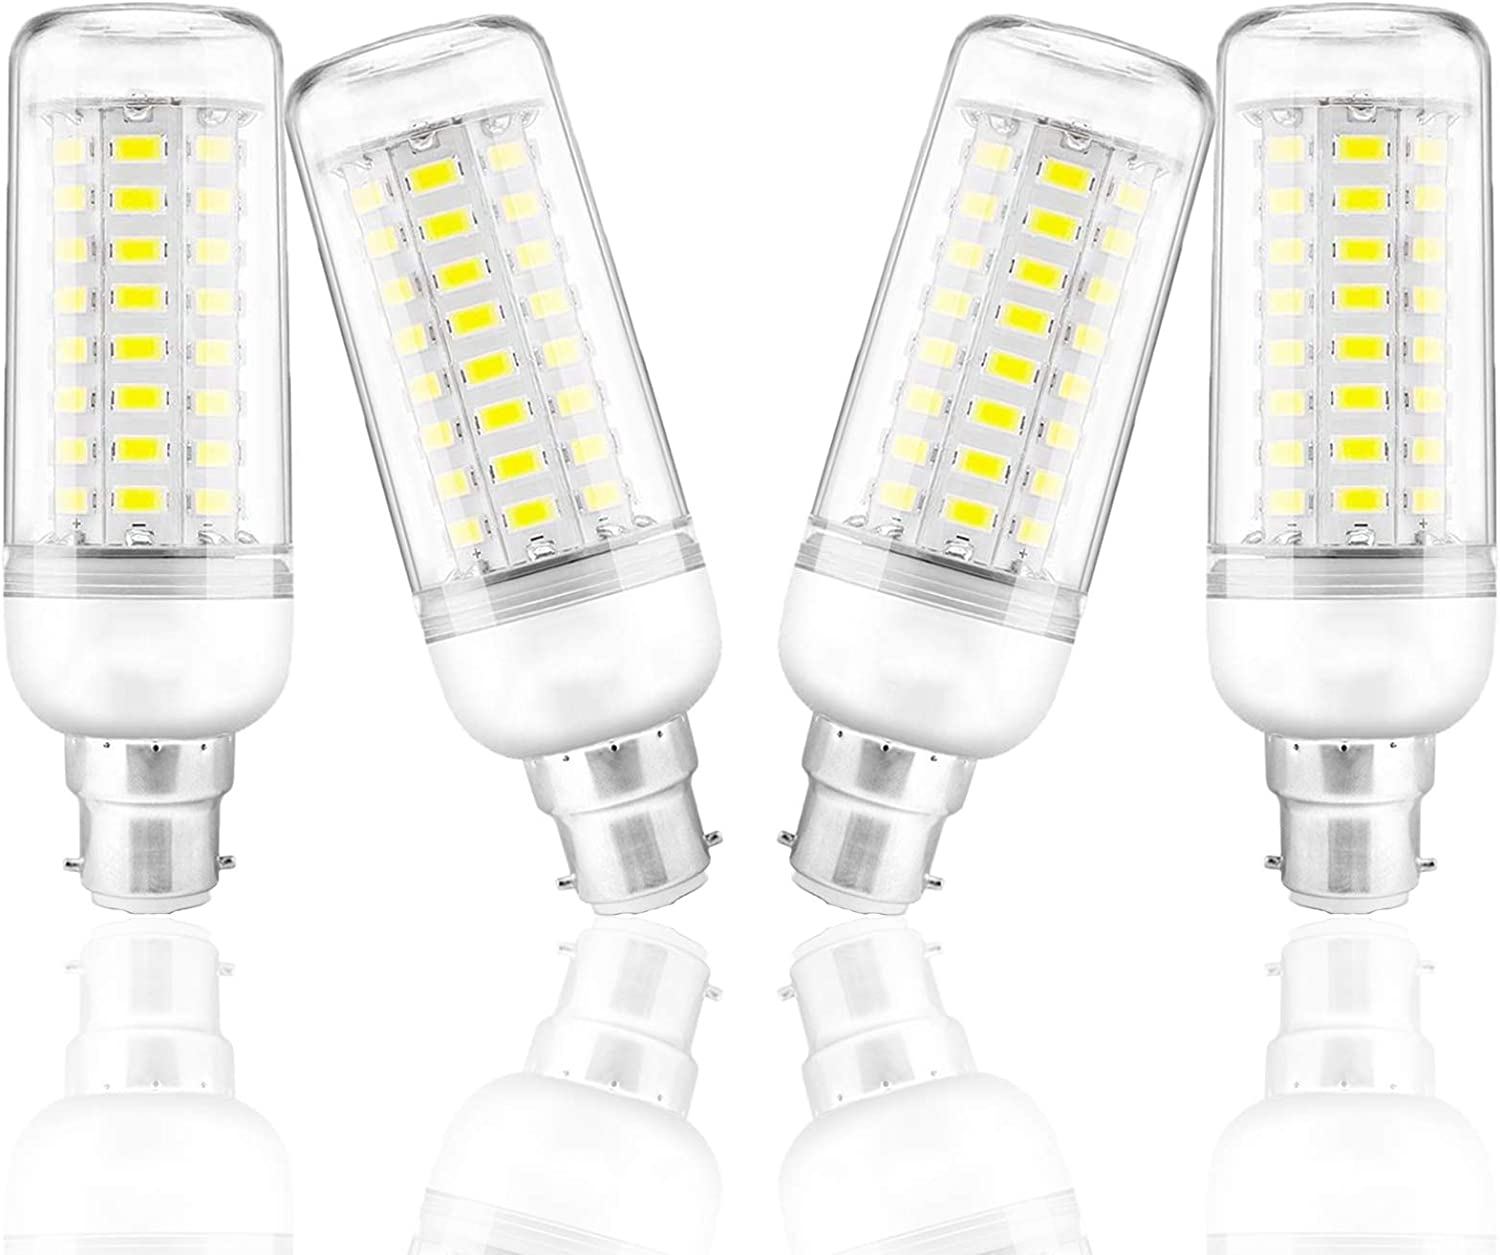 CA 220V~ 240V Pack of 4 UYBAG B22 Bayonet Light Bulb 6000K Cold White 12W LED 72 5730 SMD Corn Bulbs 100W Incandescent Equivalent Not Dimmable 1200Lm 360/° LED Light Bulbs